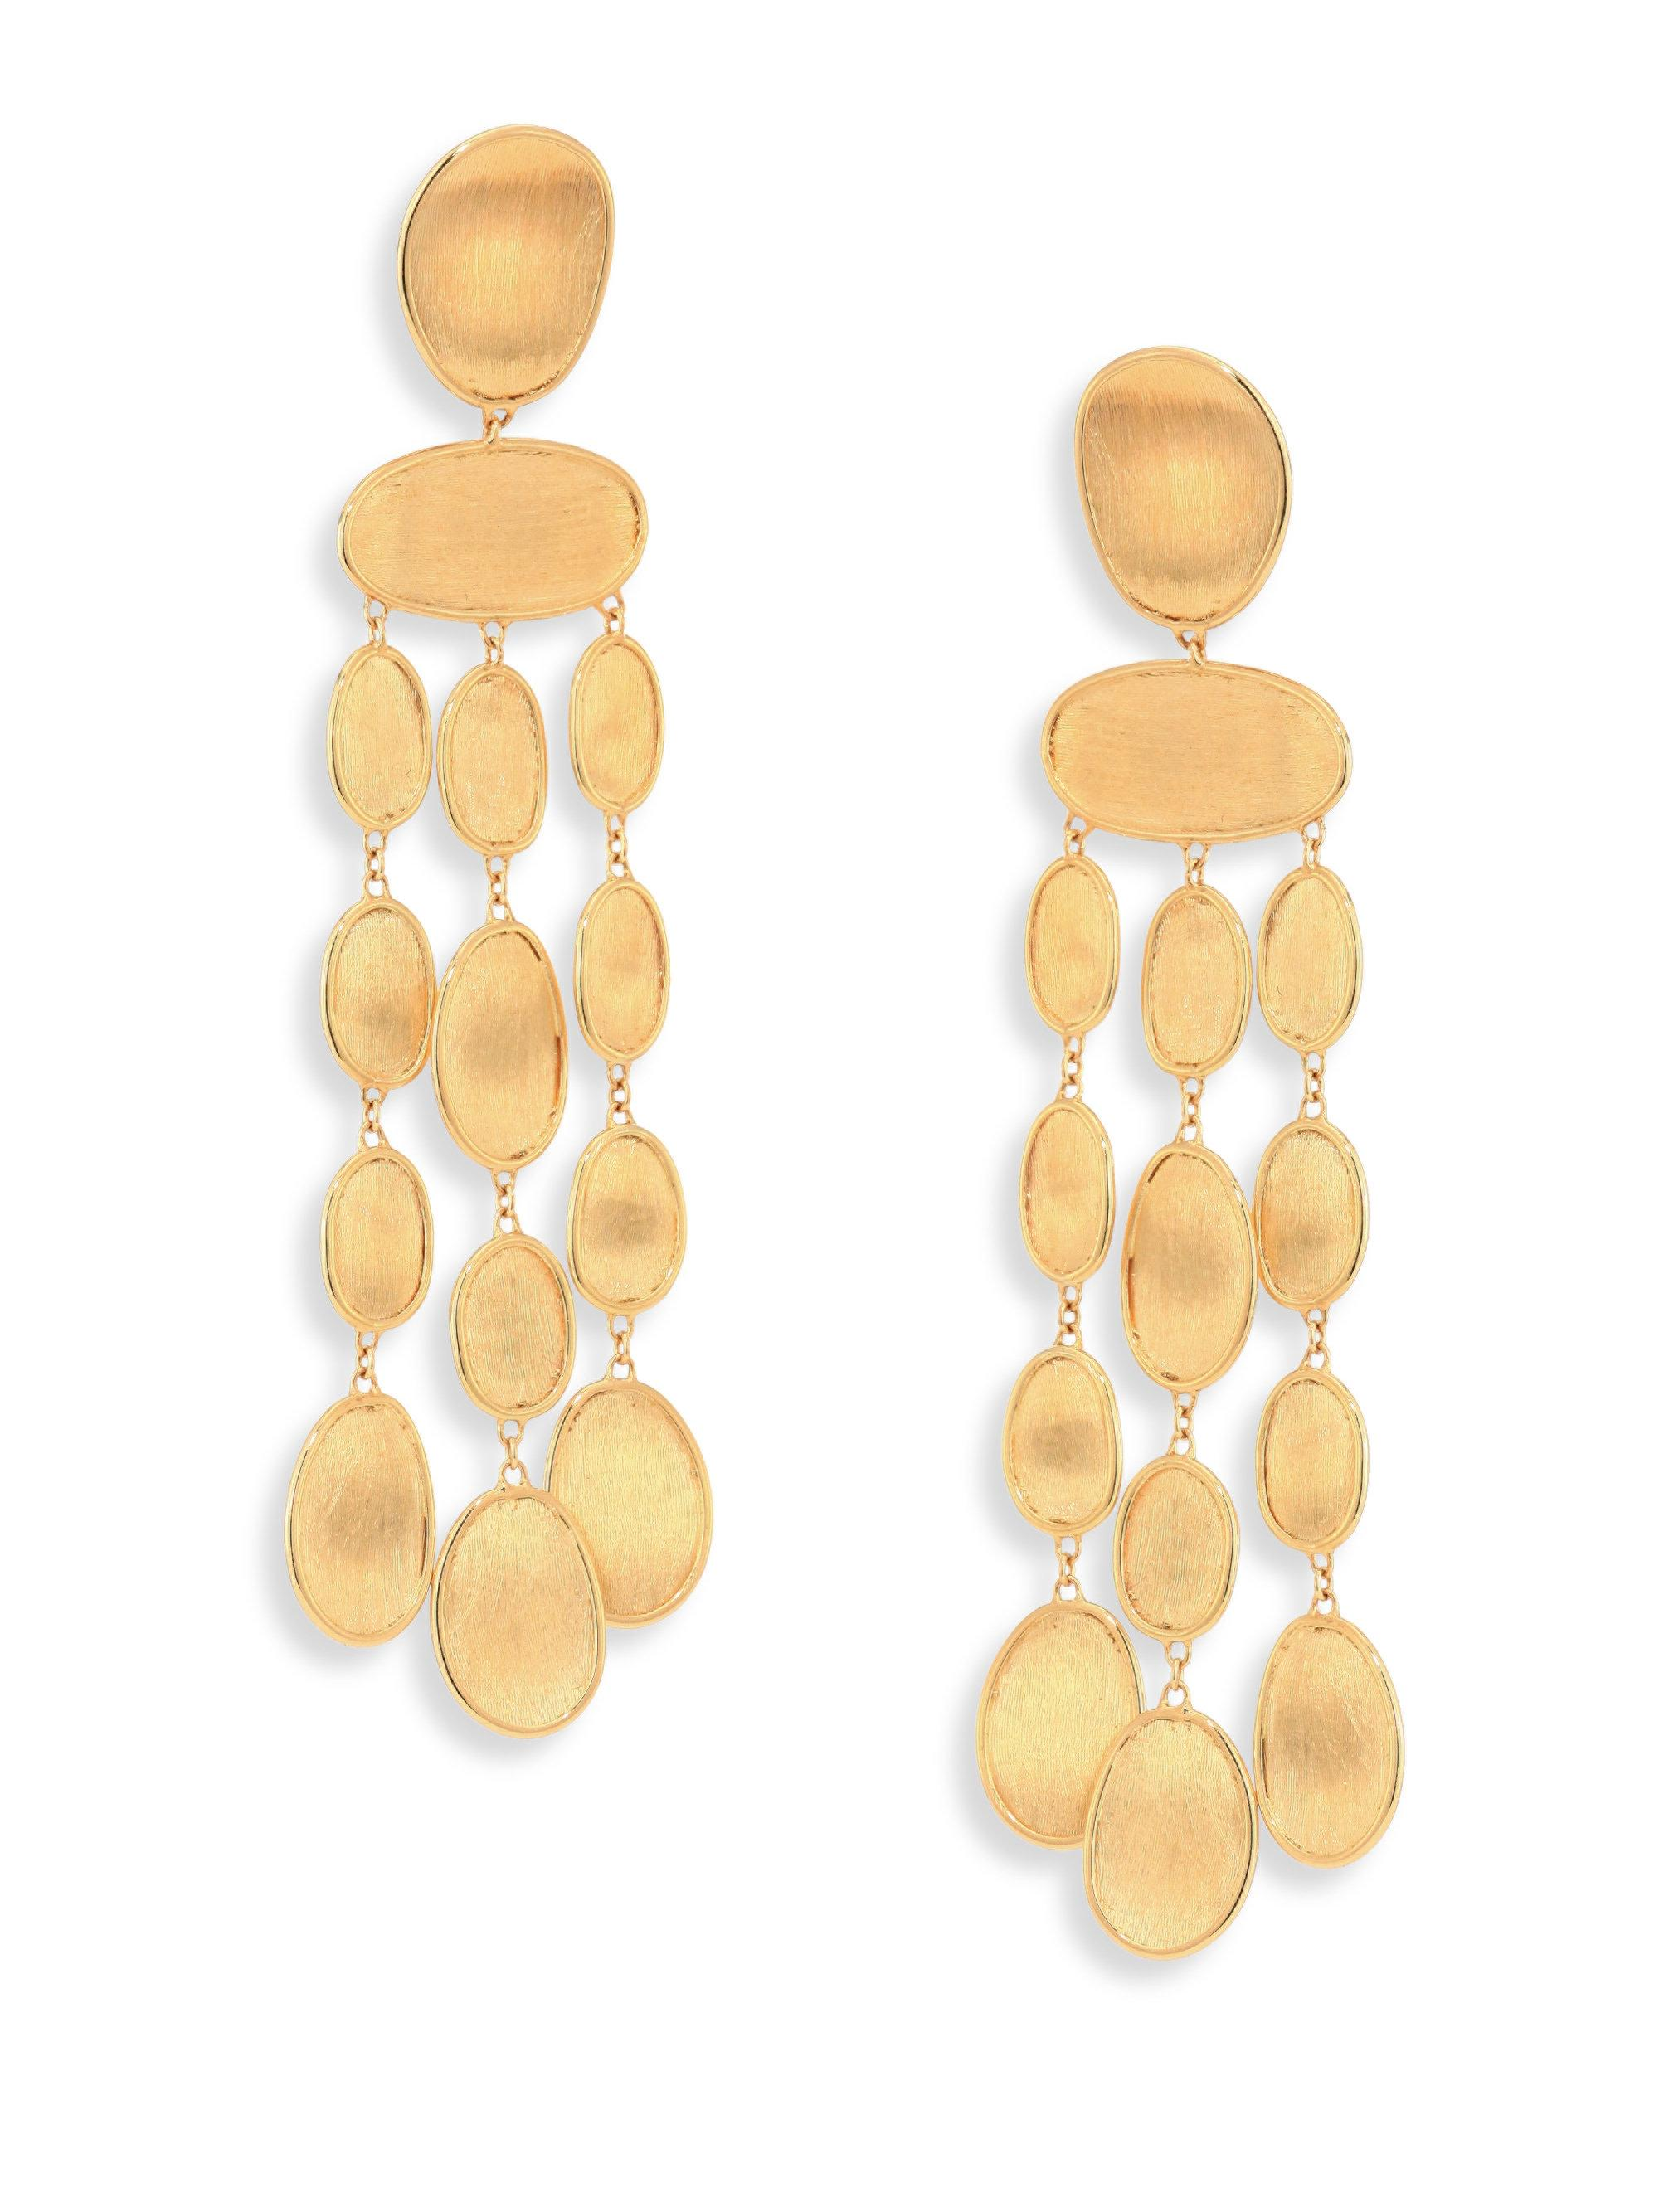 Lyst marco bicego lunaria 18k yellow gold chandelier earrings in marco bicego womens metallic lunaria 18k yellow gold chandelier earrings arubaitofo Choice Image